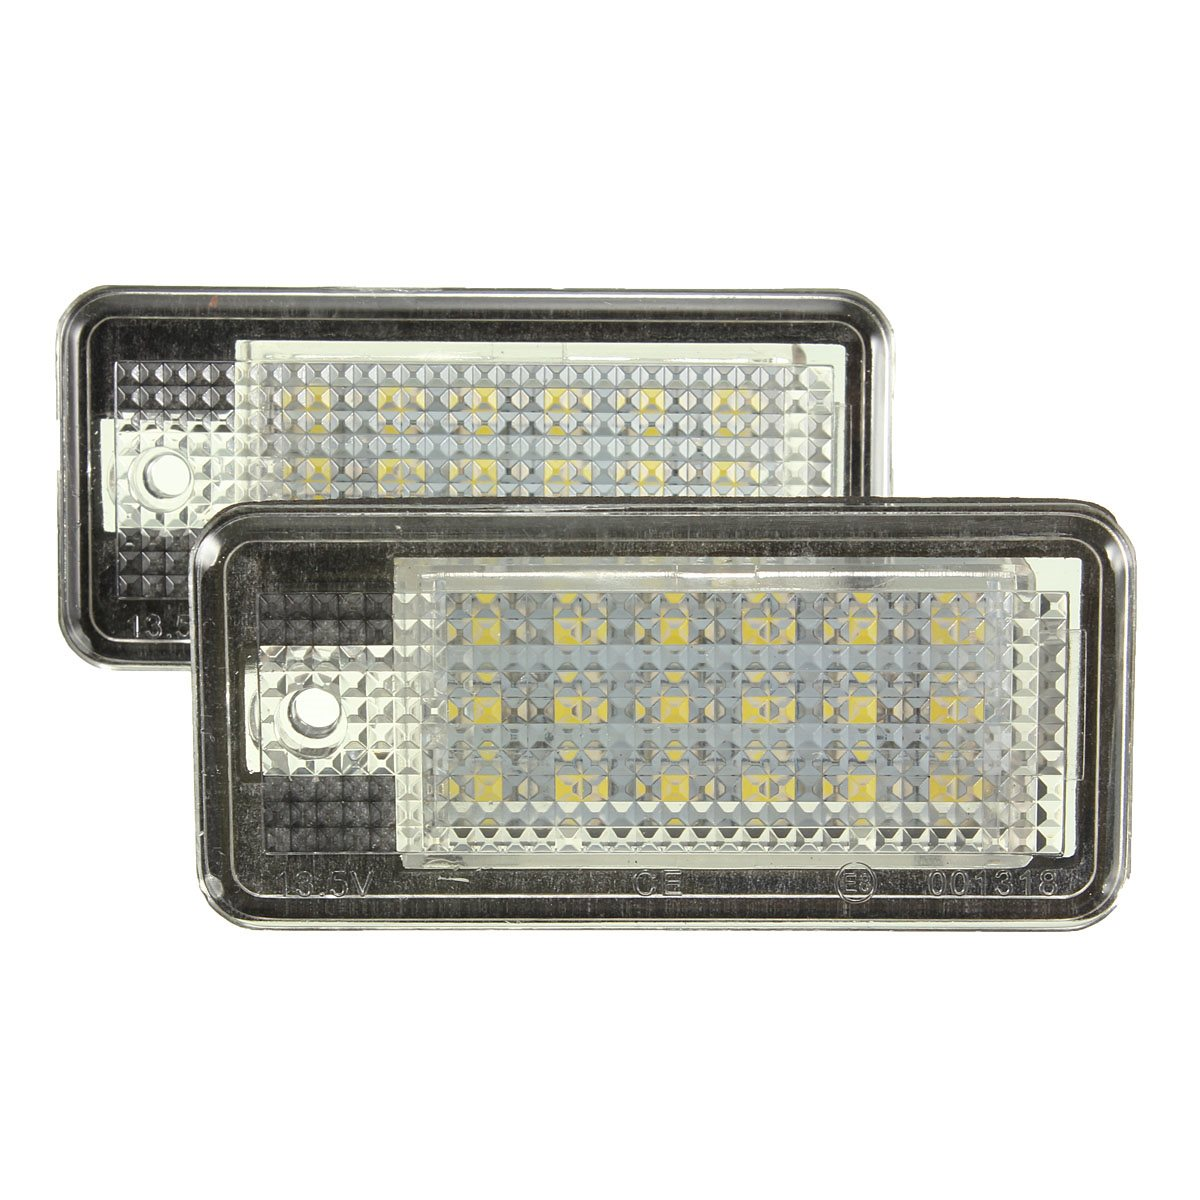 2016 New 2 White Car Error 18 LED License Number Plate Light Lamp For Audi A3 S3 A4 S4 B6 B7 A6 S6 A8 Q7